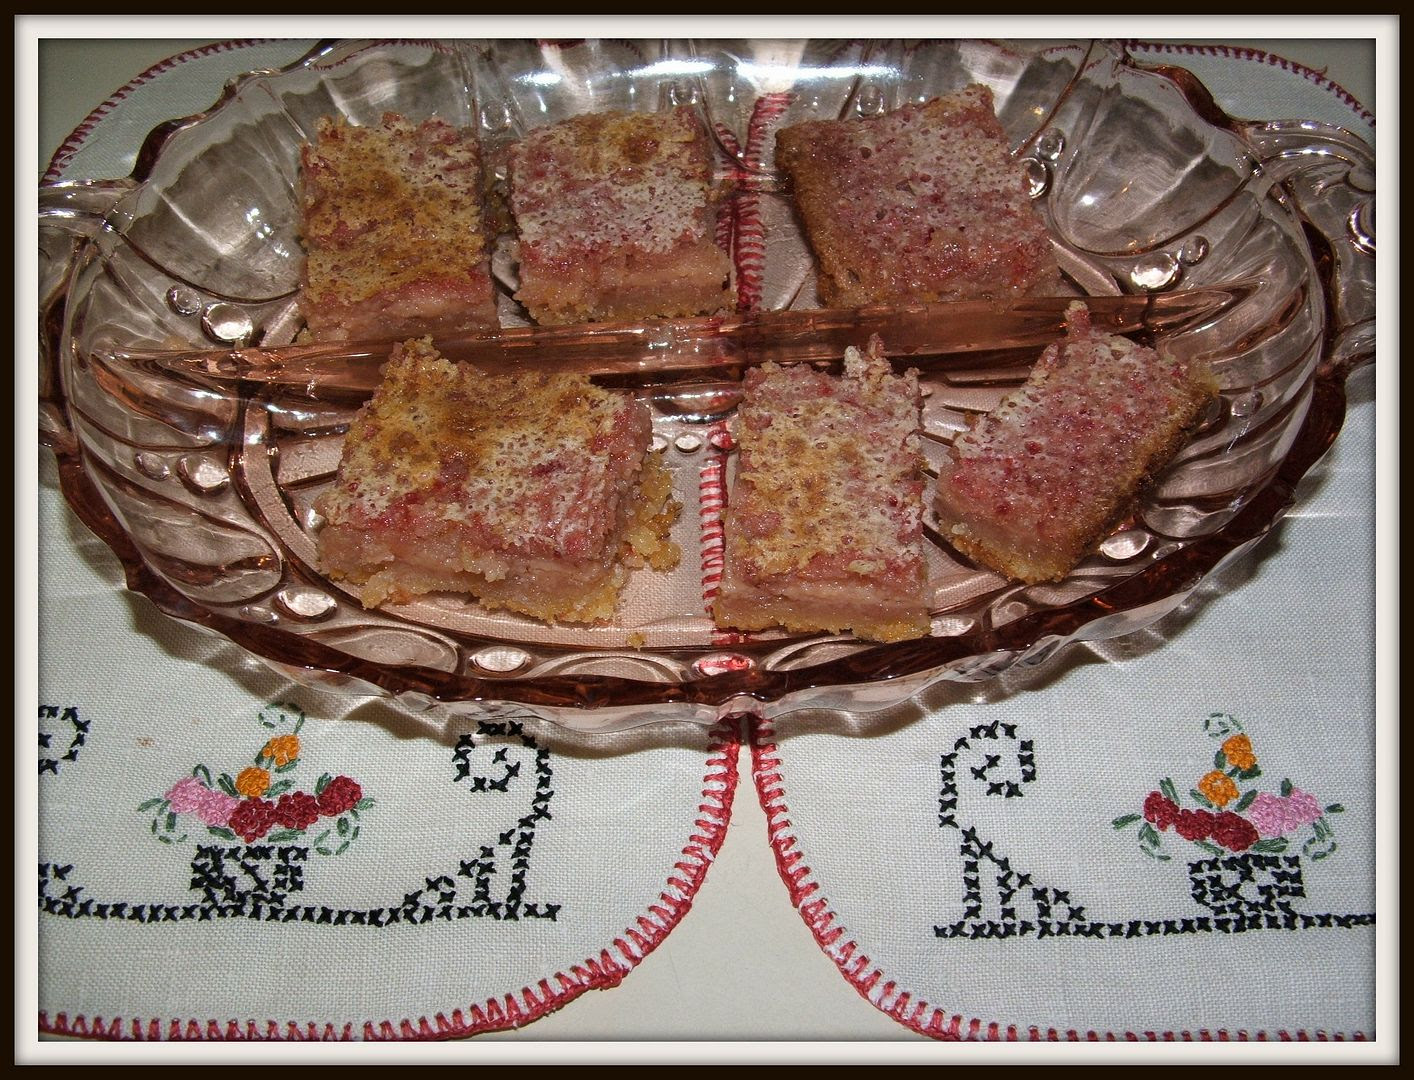 Strawberry Lemon Coconut Squares by Angie Ouellette-Tower for godsgrowinggarden.com photo 008_zpsa54aaf54.jpg